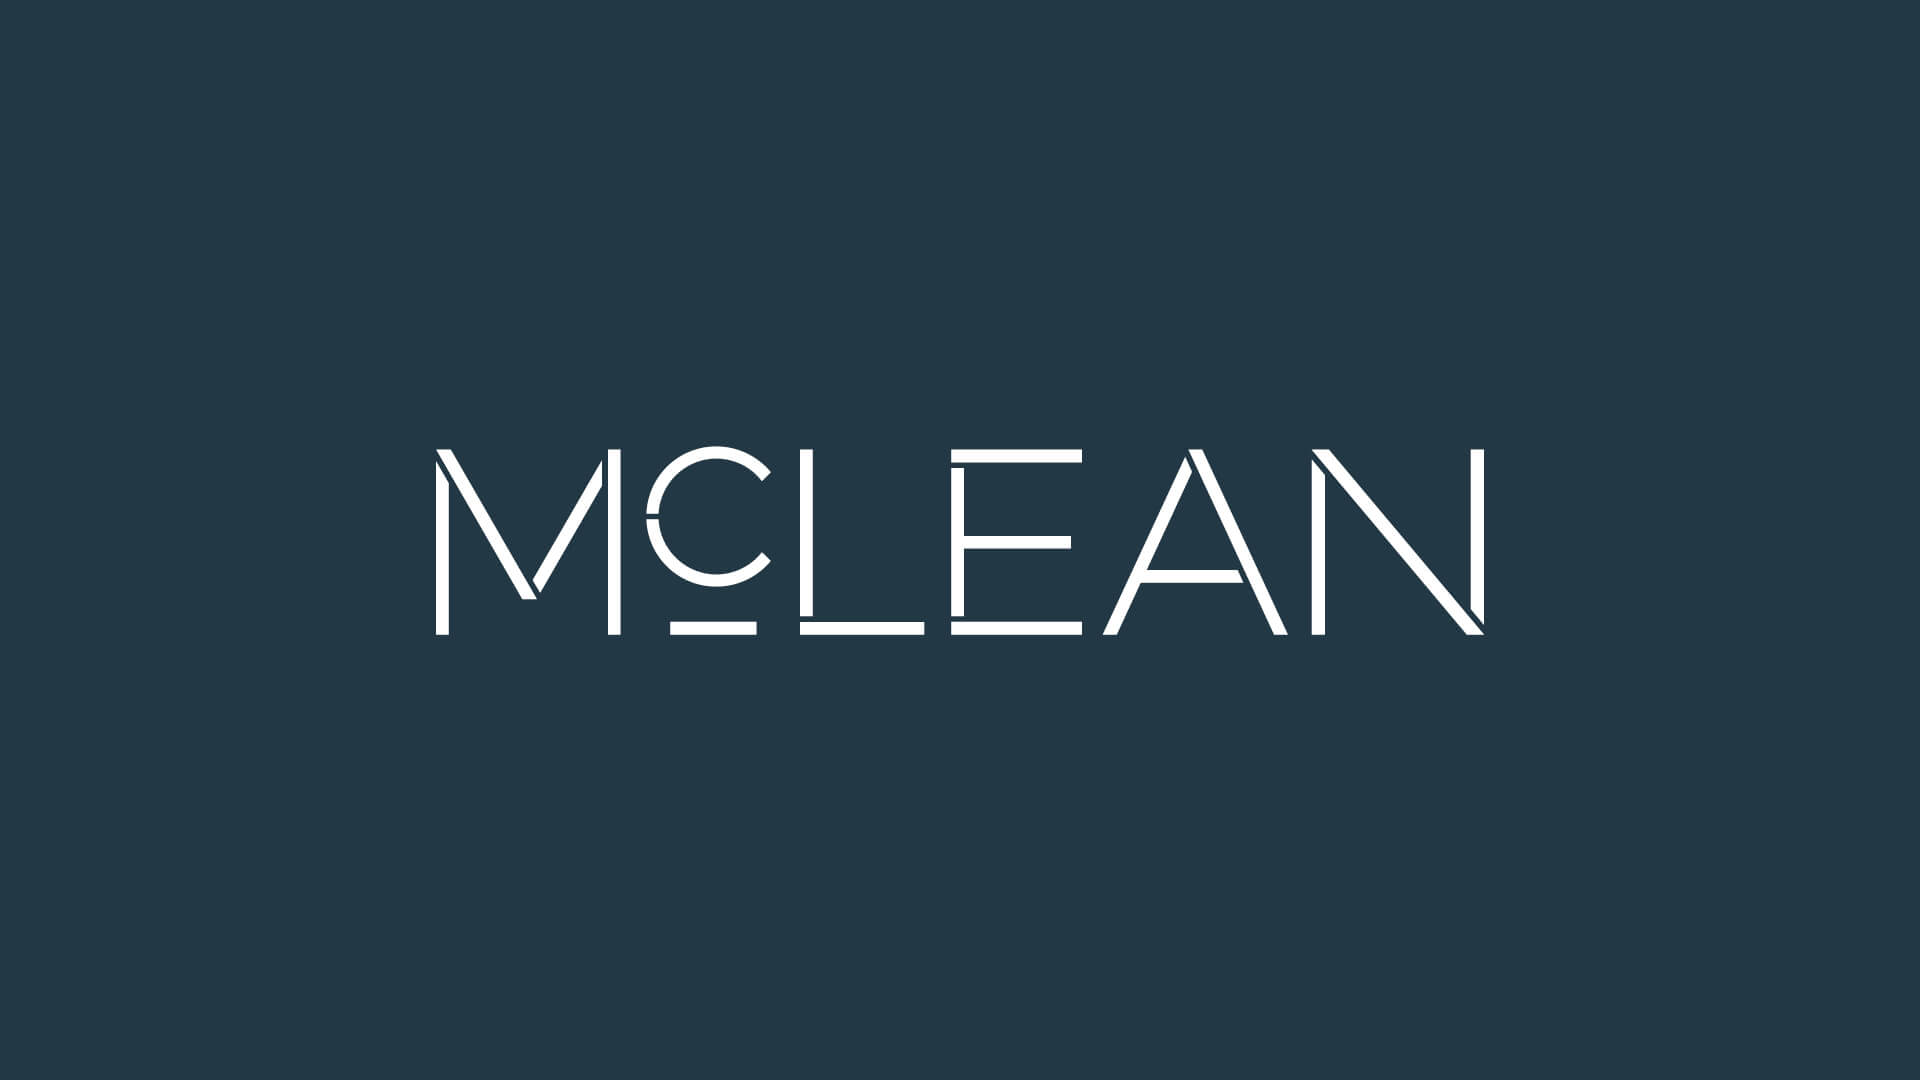 mclean group brand identity design